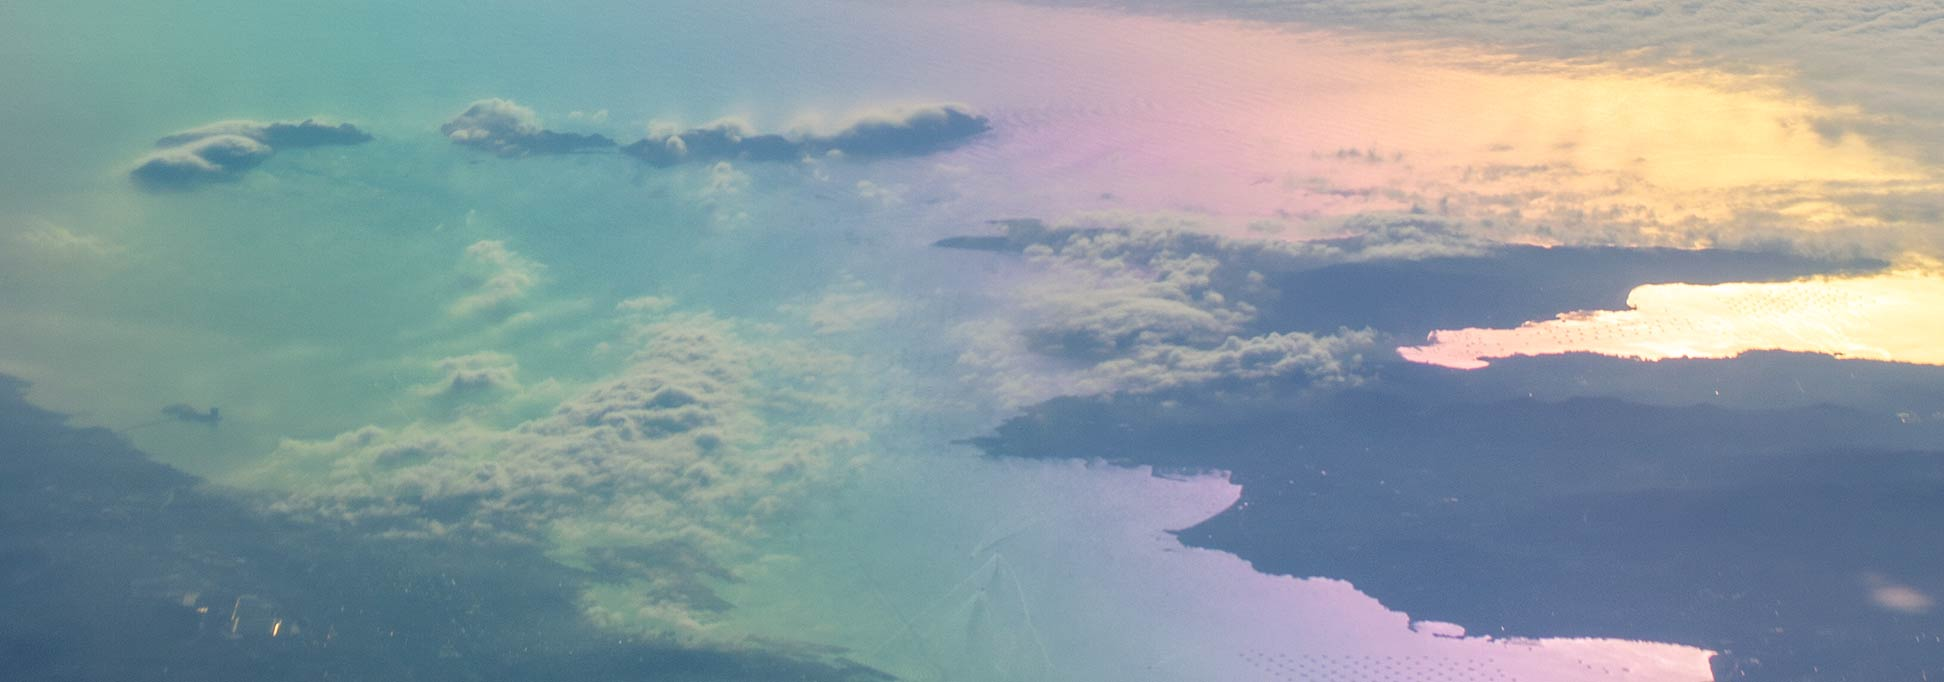 Over the clouds - Islands in the Sky